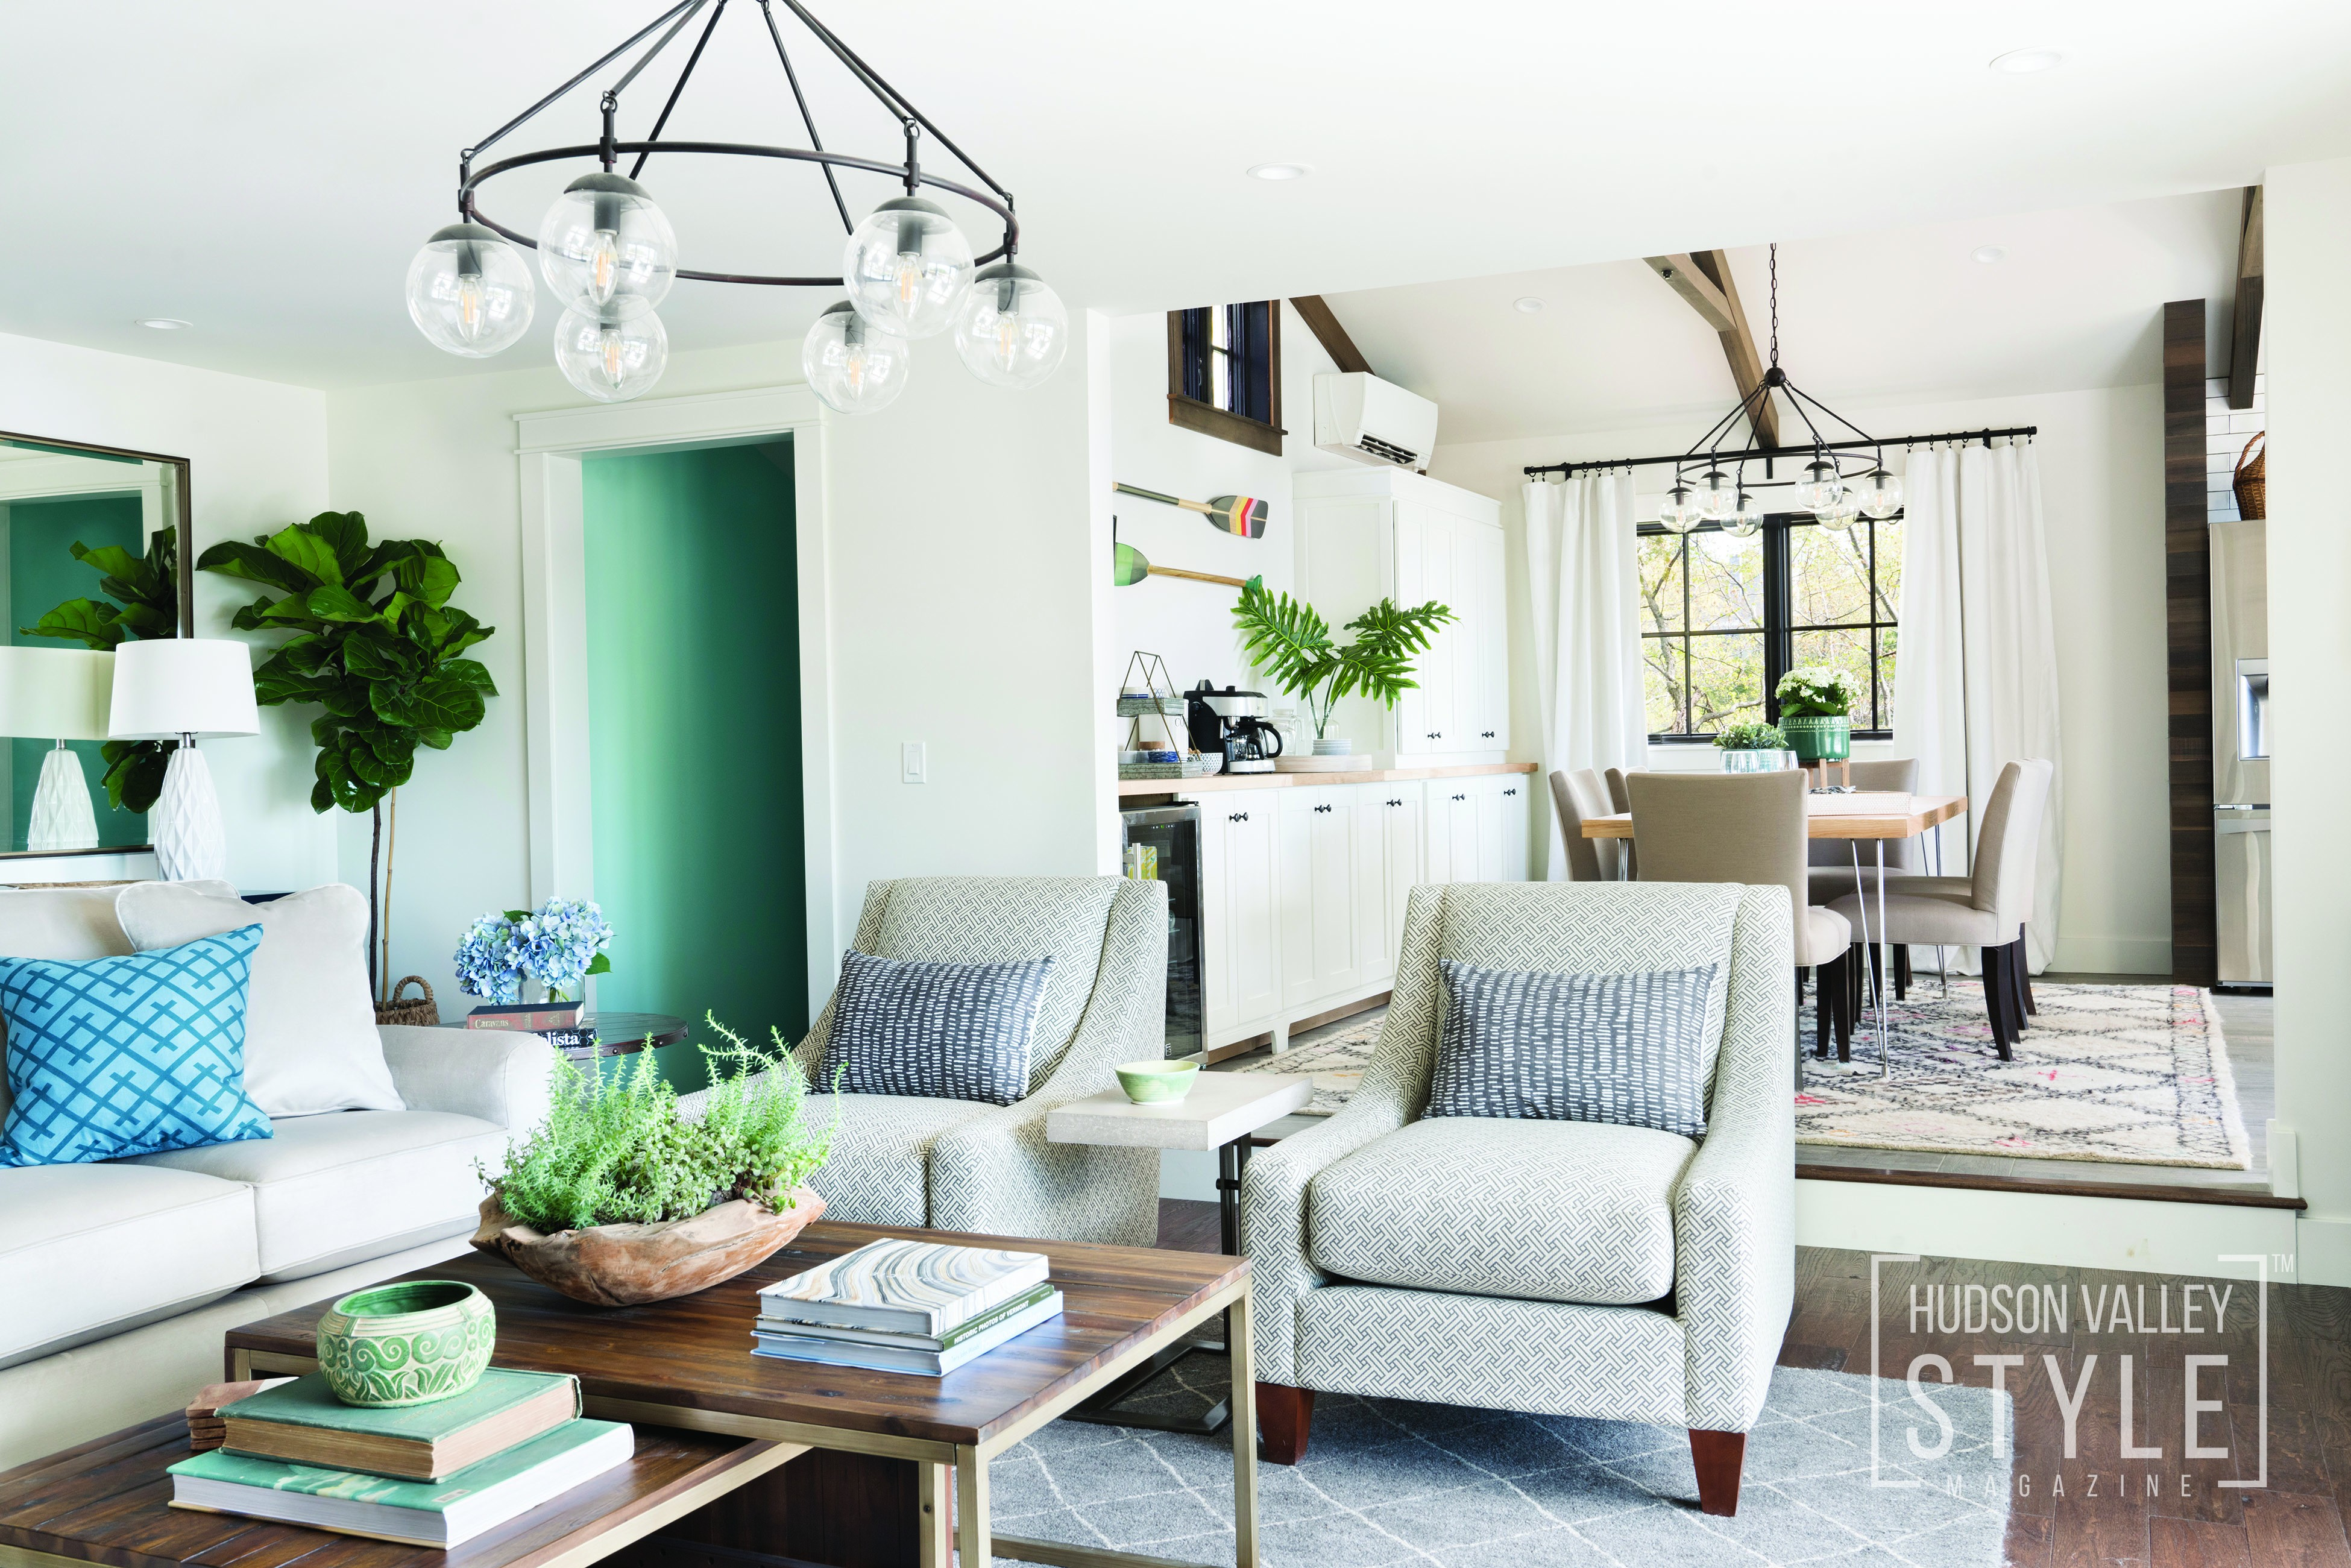 Save Money Through Energy Efficiency - Hudson Valley Style Magazine